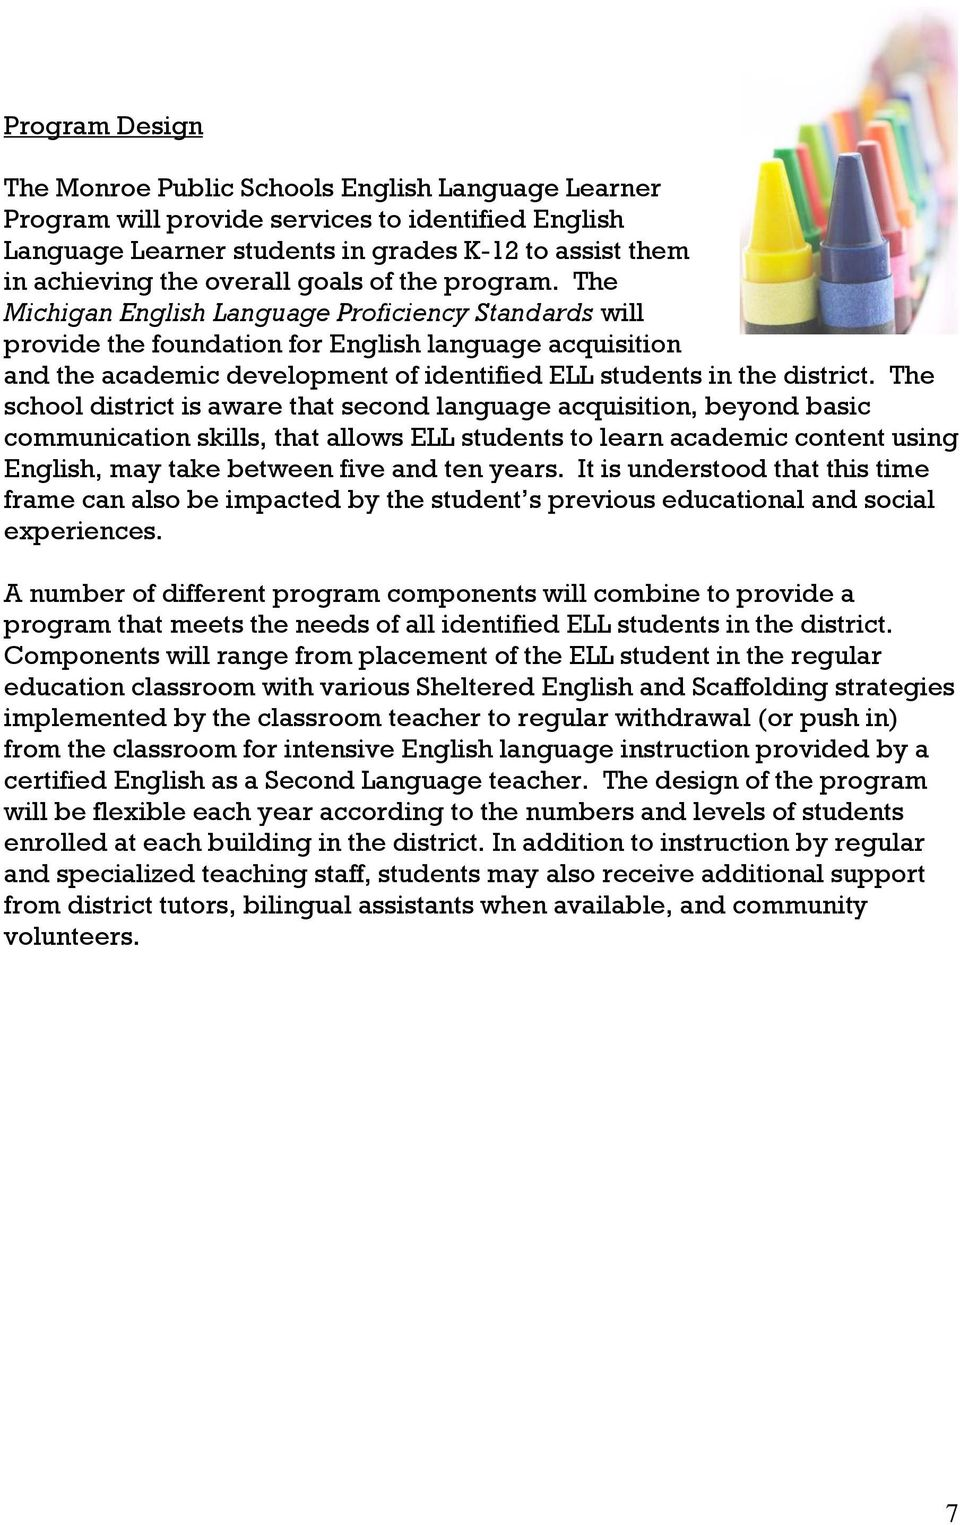 The school district is aware that second language acquisition, beyond basic communication skills, that allows students to learn academic content using, may take between five and ten years.